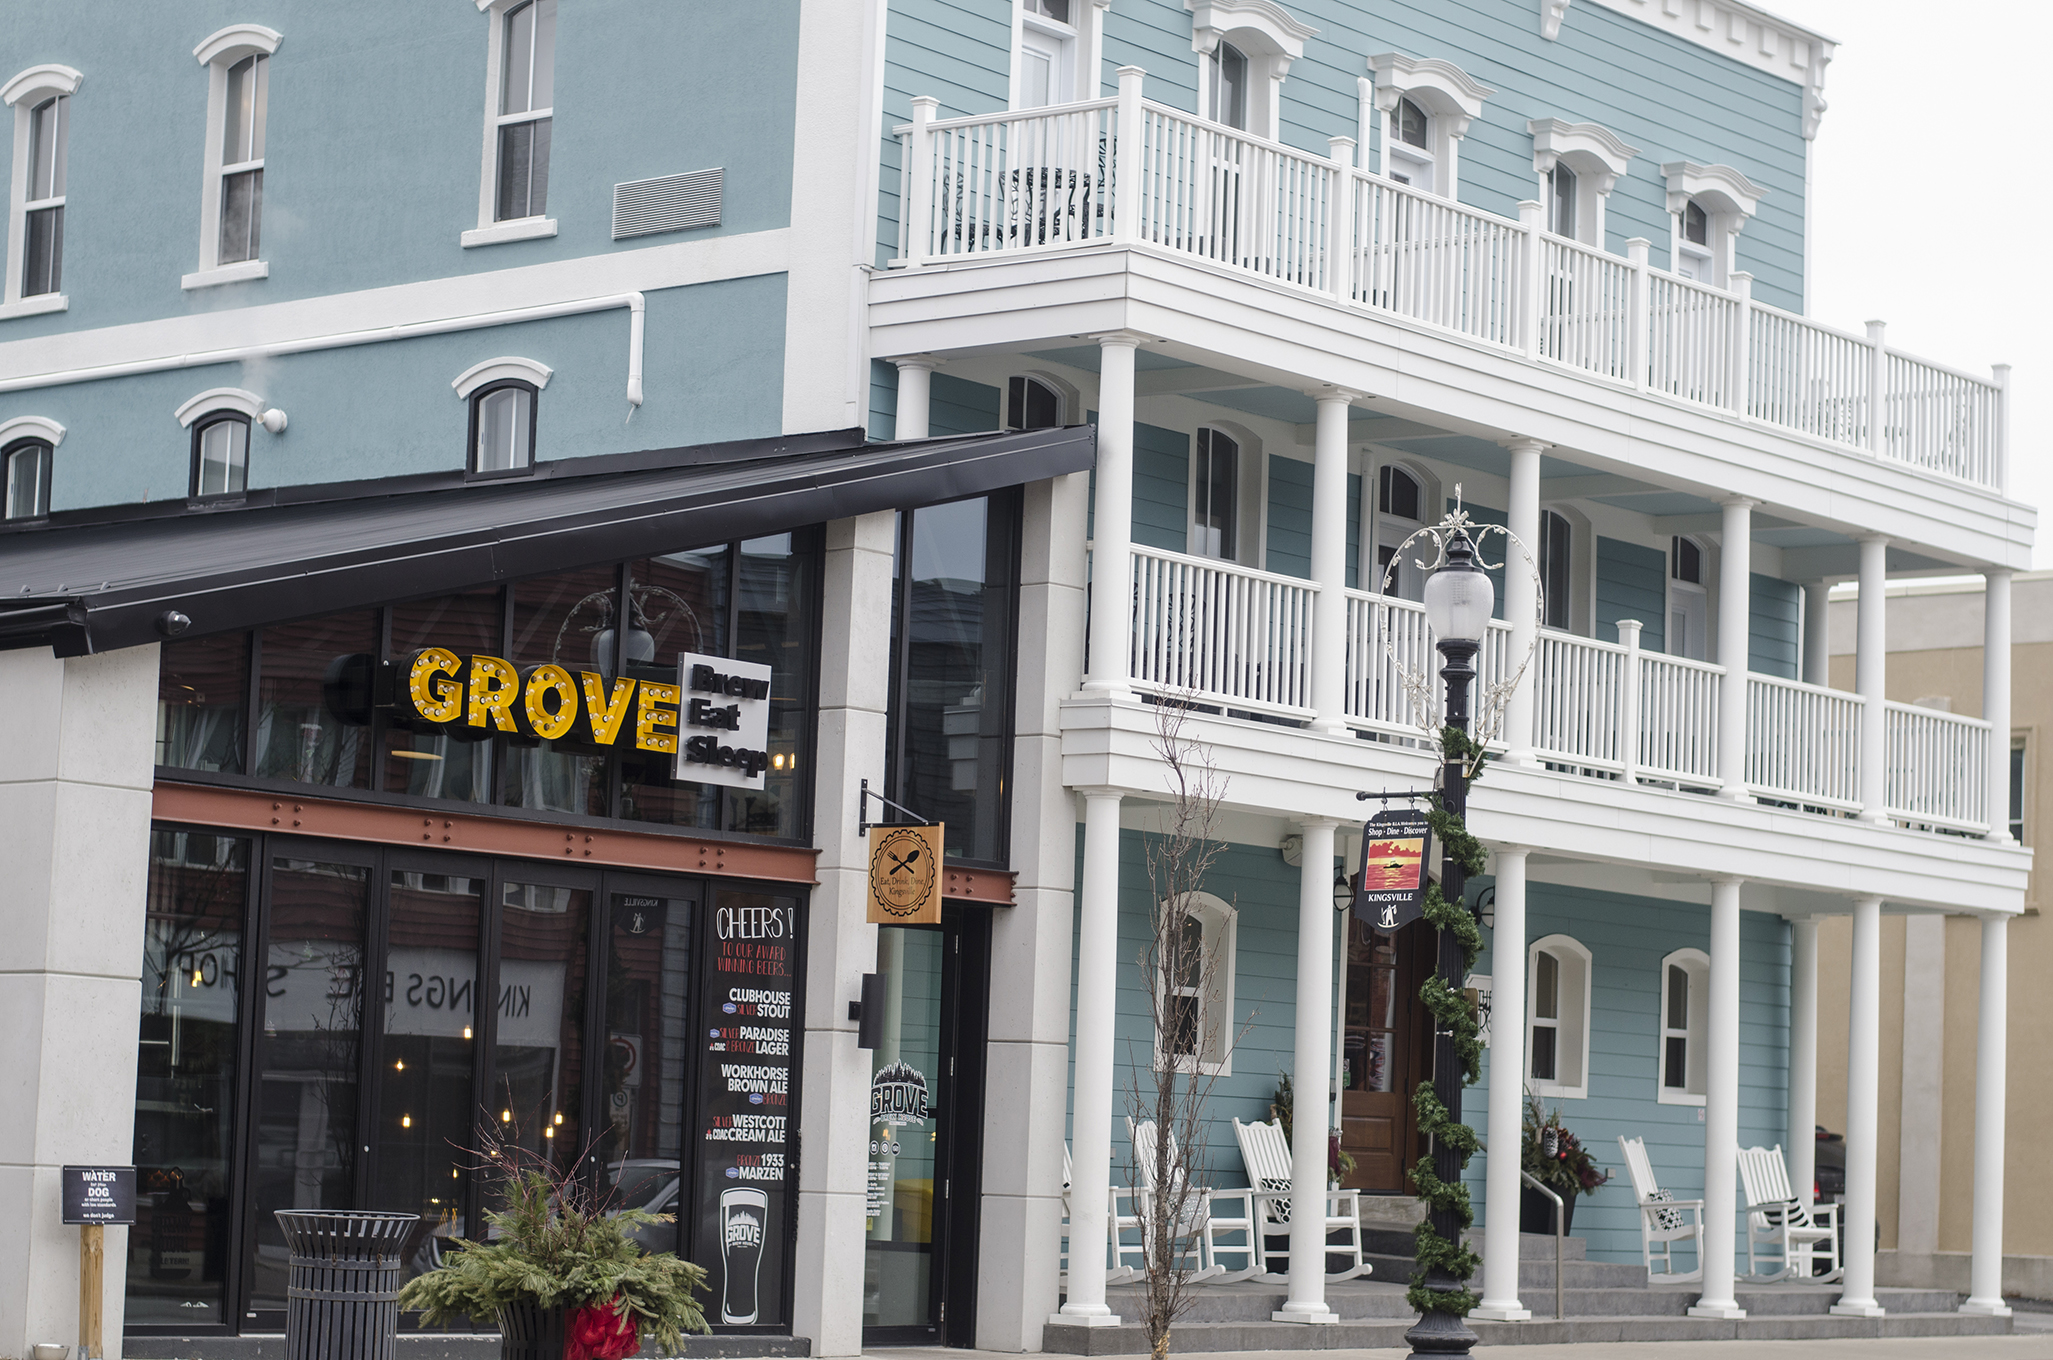 The Grove Brew House and The Grove Hotel in Kingsville, Ontario.